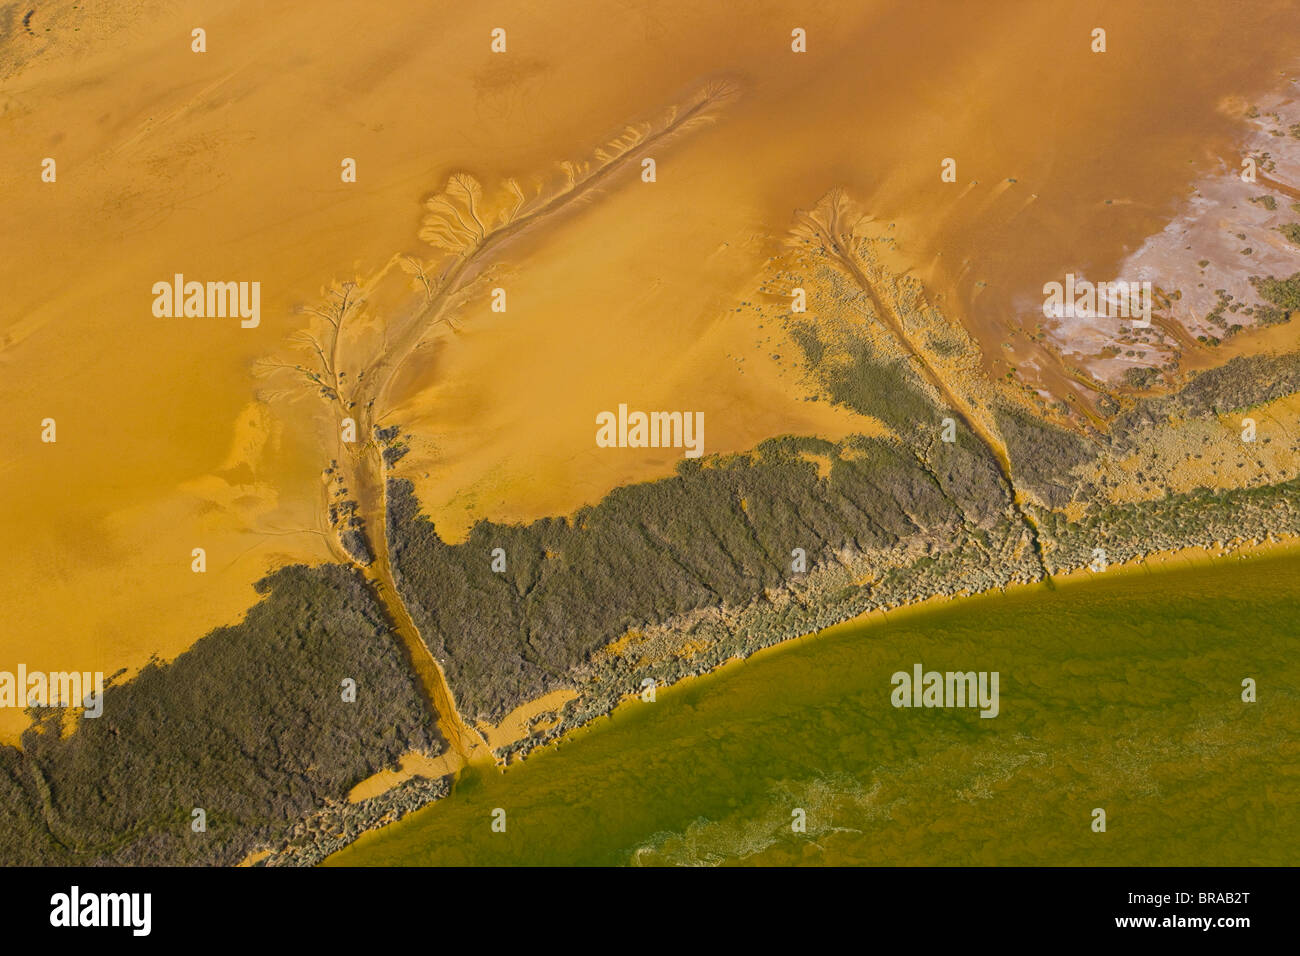 Aerial view of Rio Tinto estuary, Costa de la Luz, Huelva, Andalucia, Spain, March 2008 - Stock Image